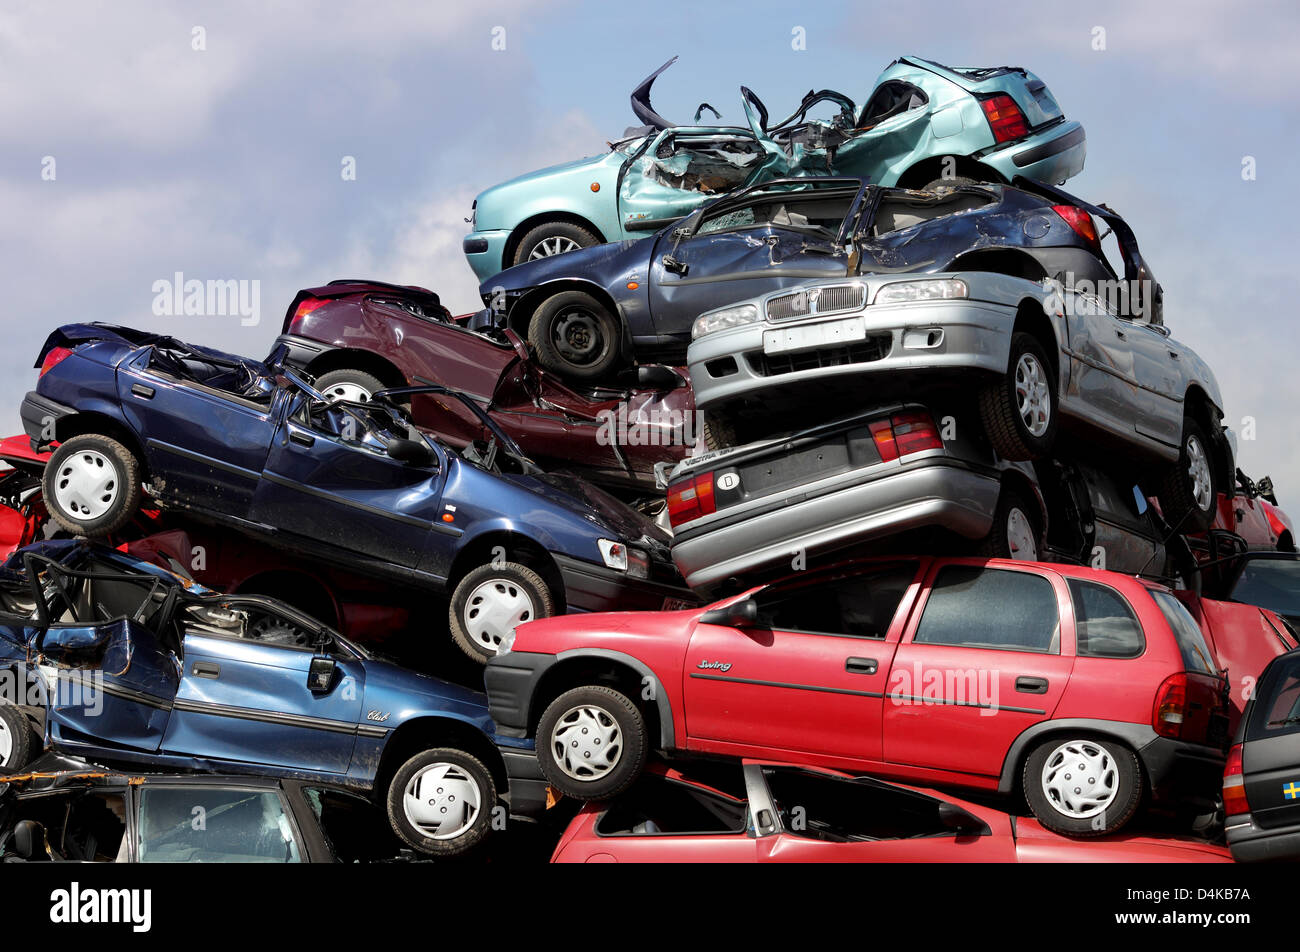 scrapped cars piled up at a car recycling plant near leverkusen stock photo 54515646 alamy. Black Bedroom Furniture Sets. Home Design Ideas